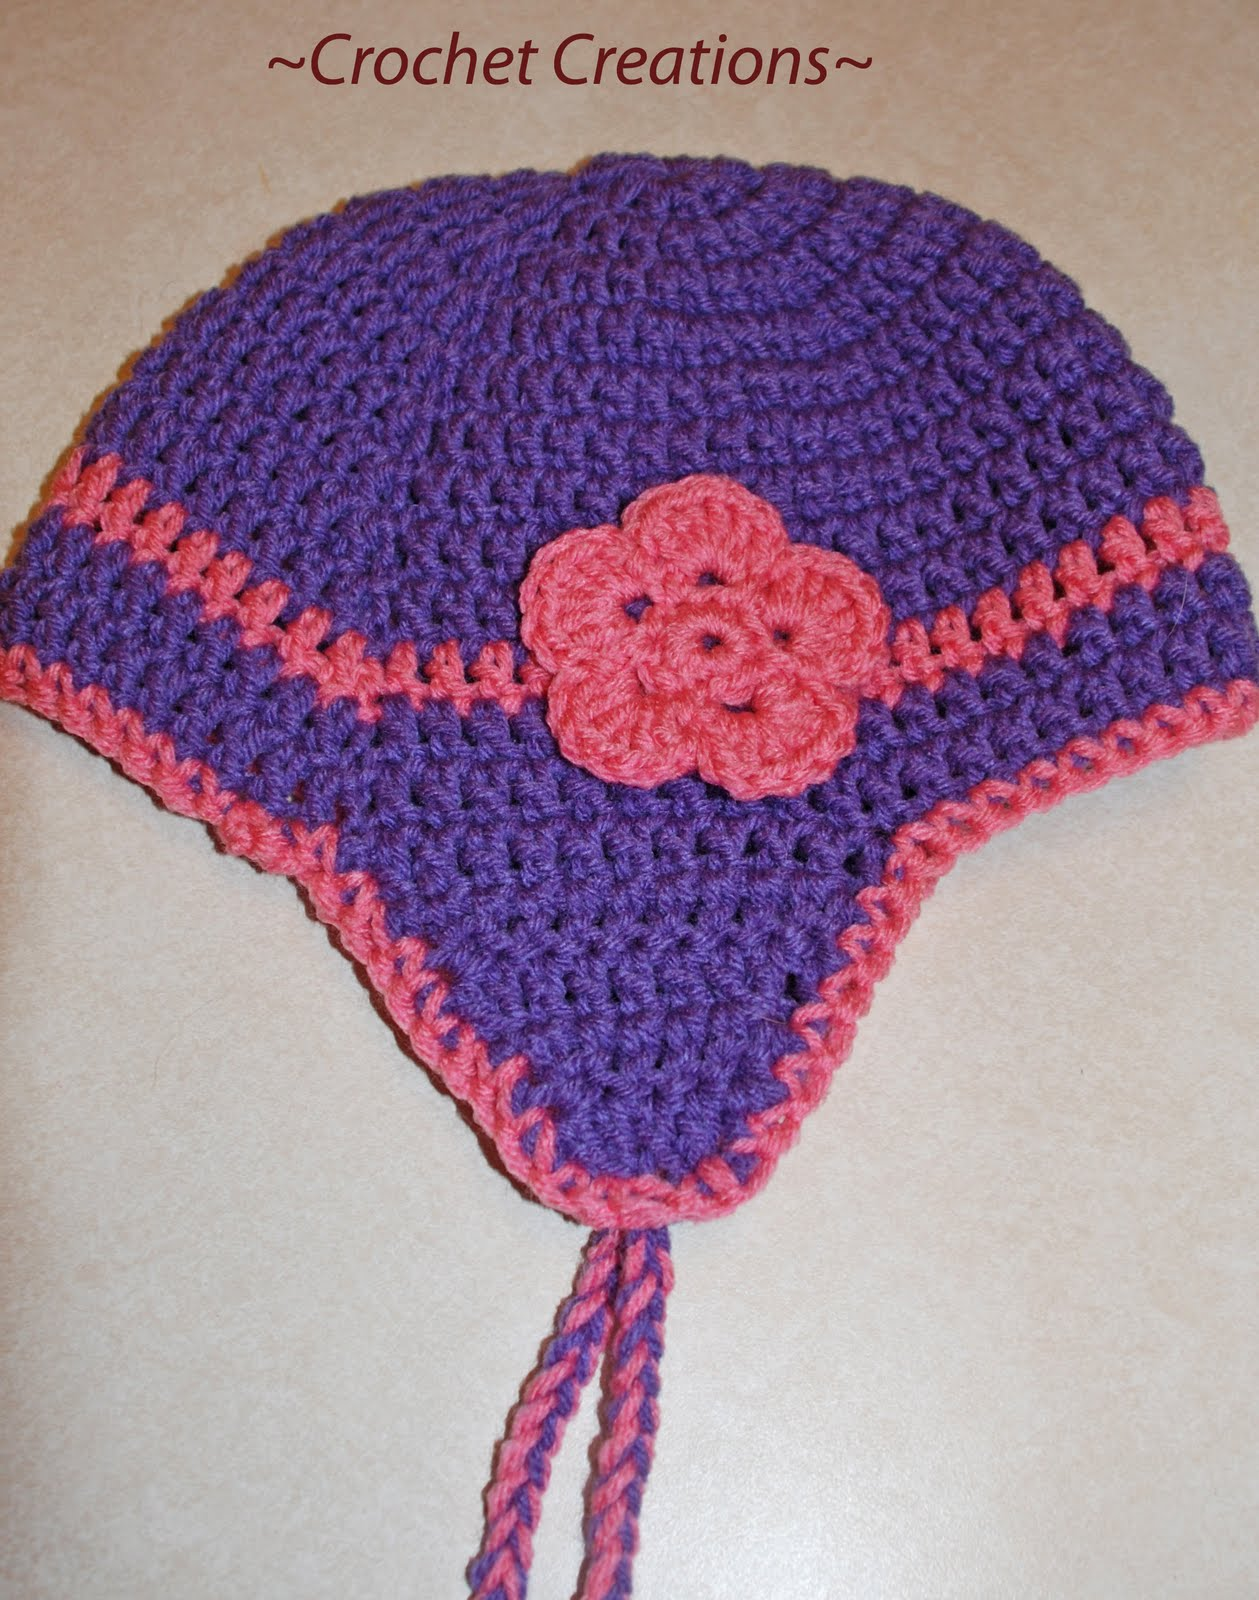 Free Crochet Pattern Toddler Hat Ear Flaps : CROCHET EAR FLAP HAT PATTERNS Crochet Patterns